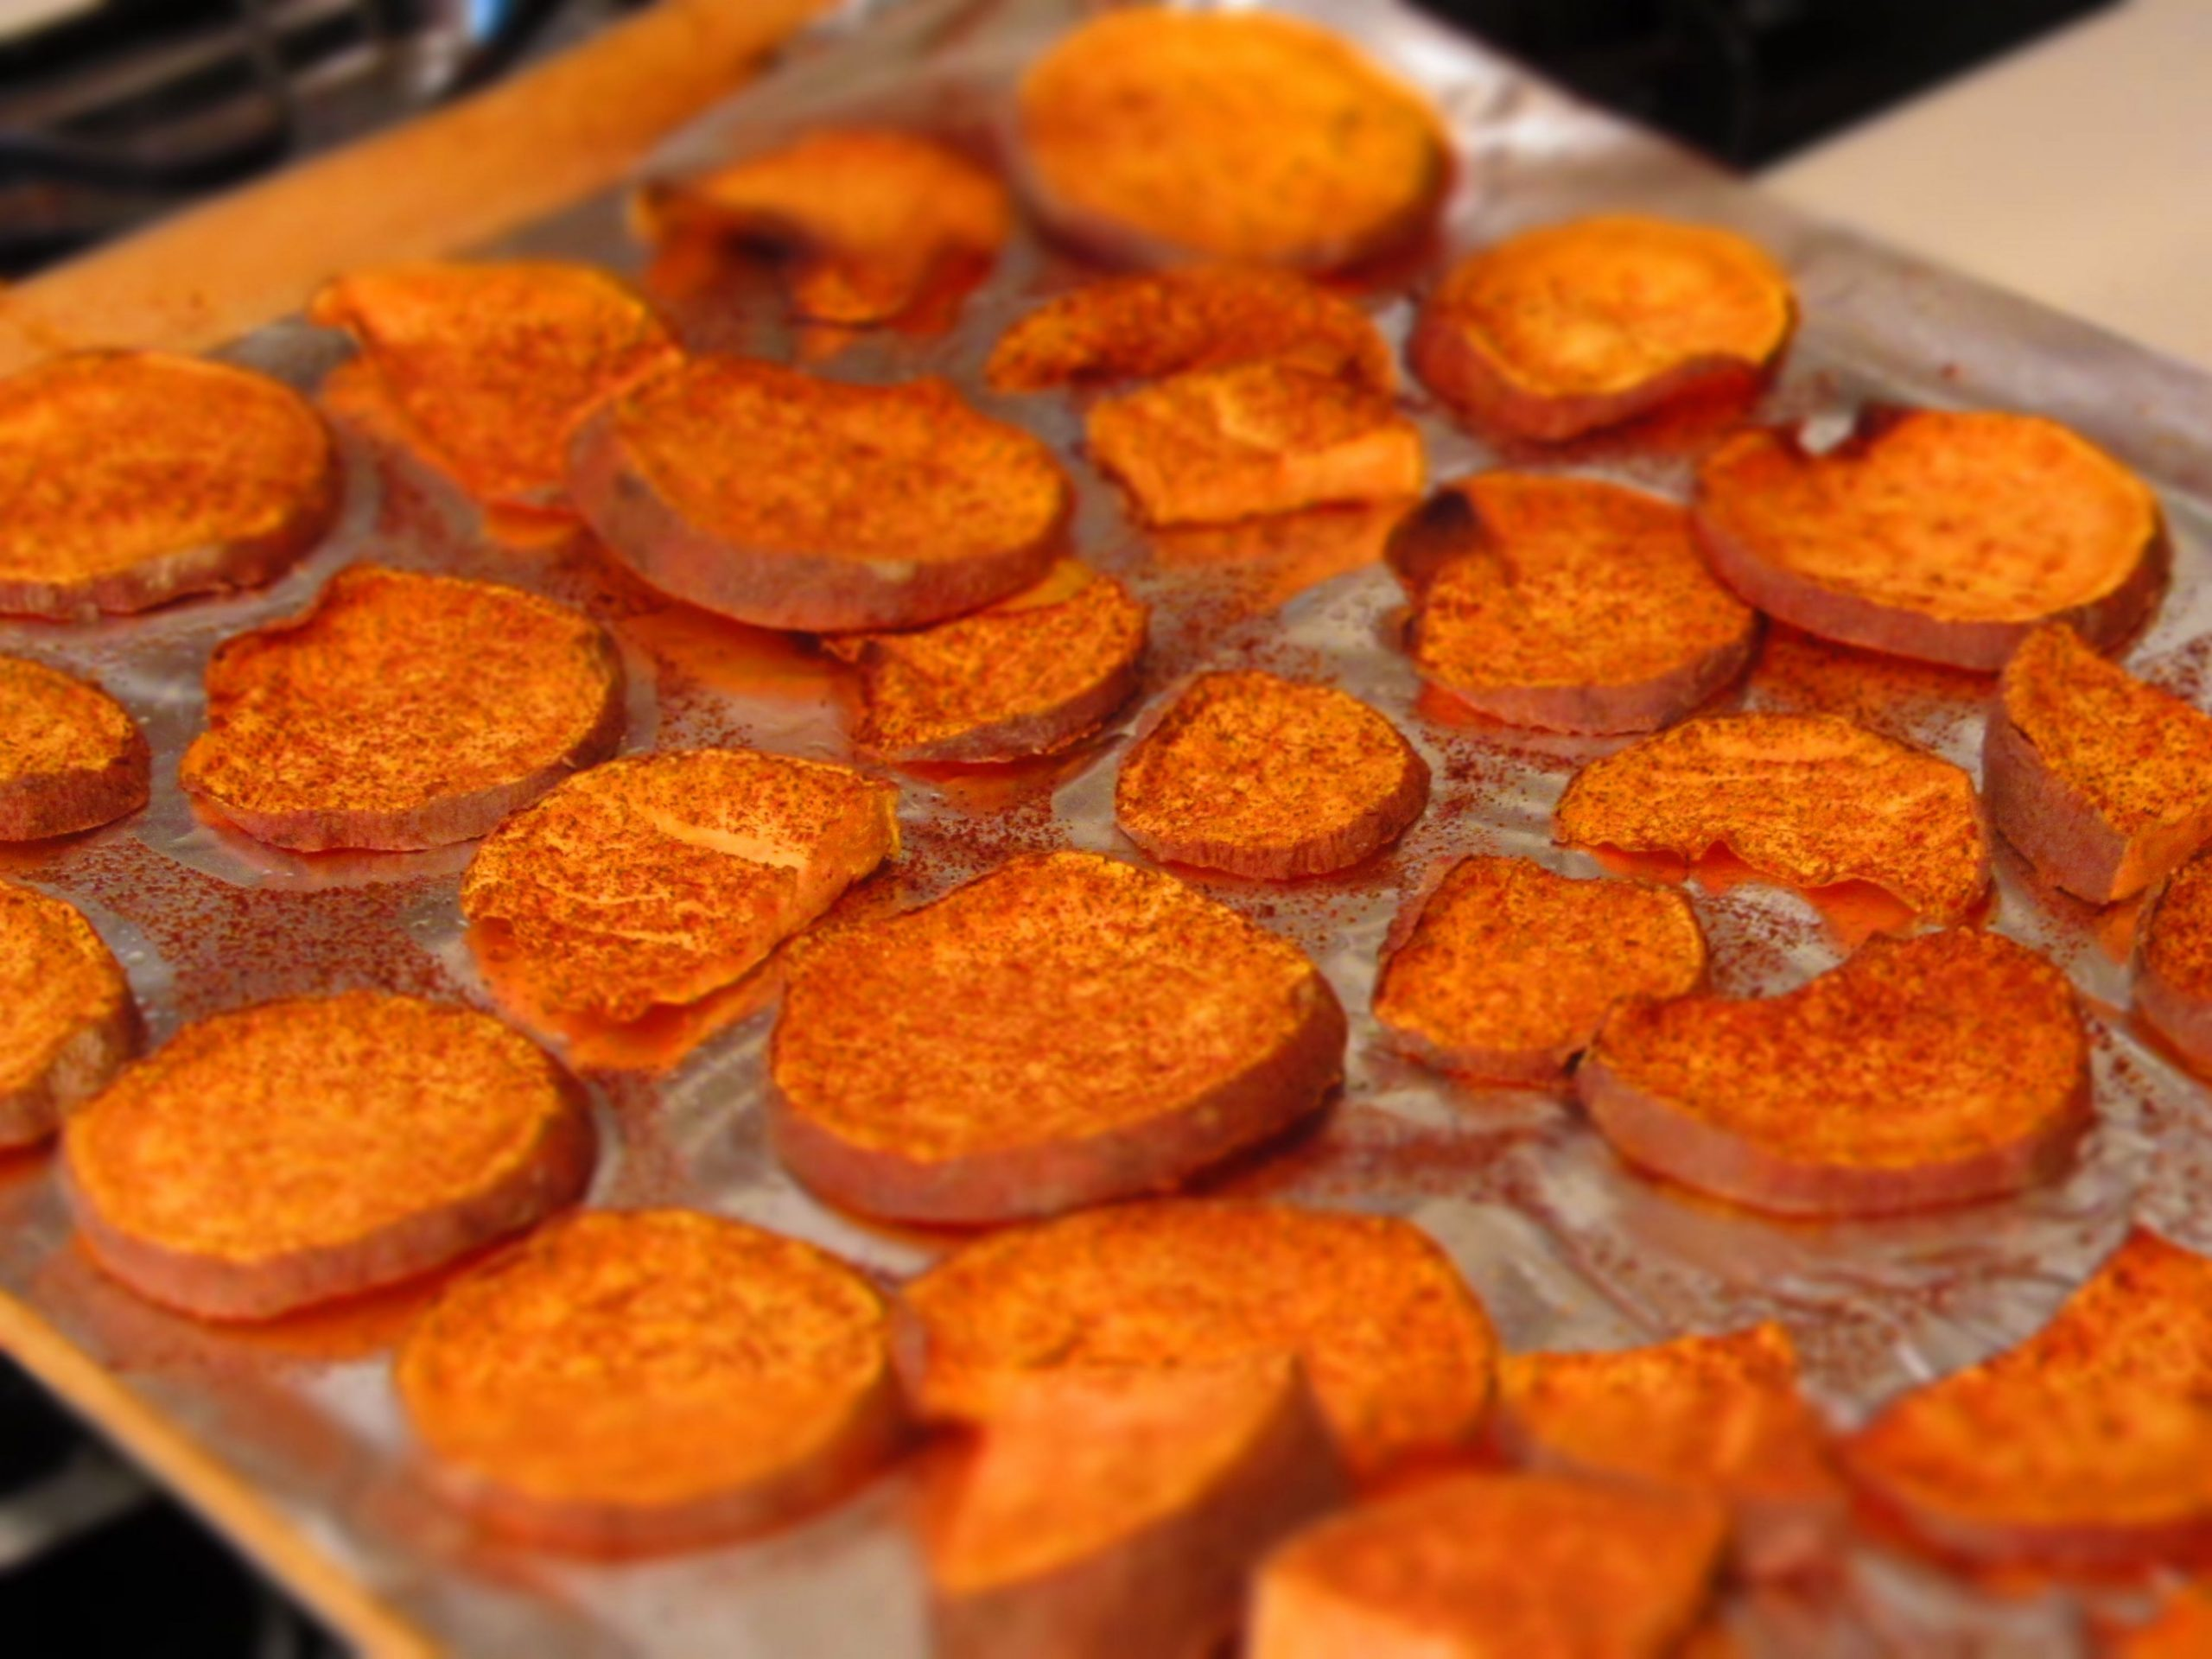 Baked Sweet Potato Slices | Sweet potato recipes baked, Baked ...